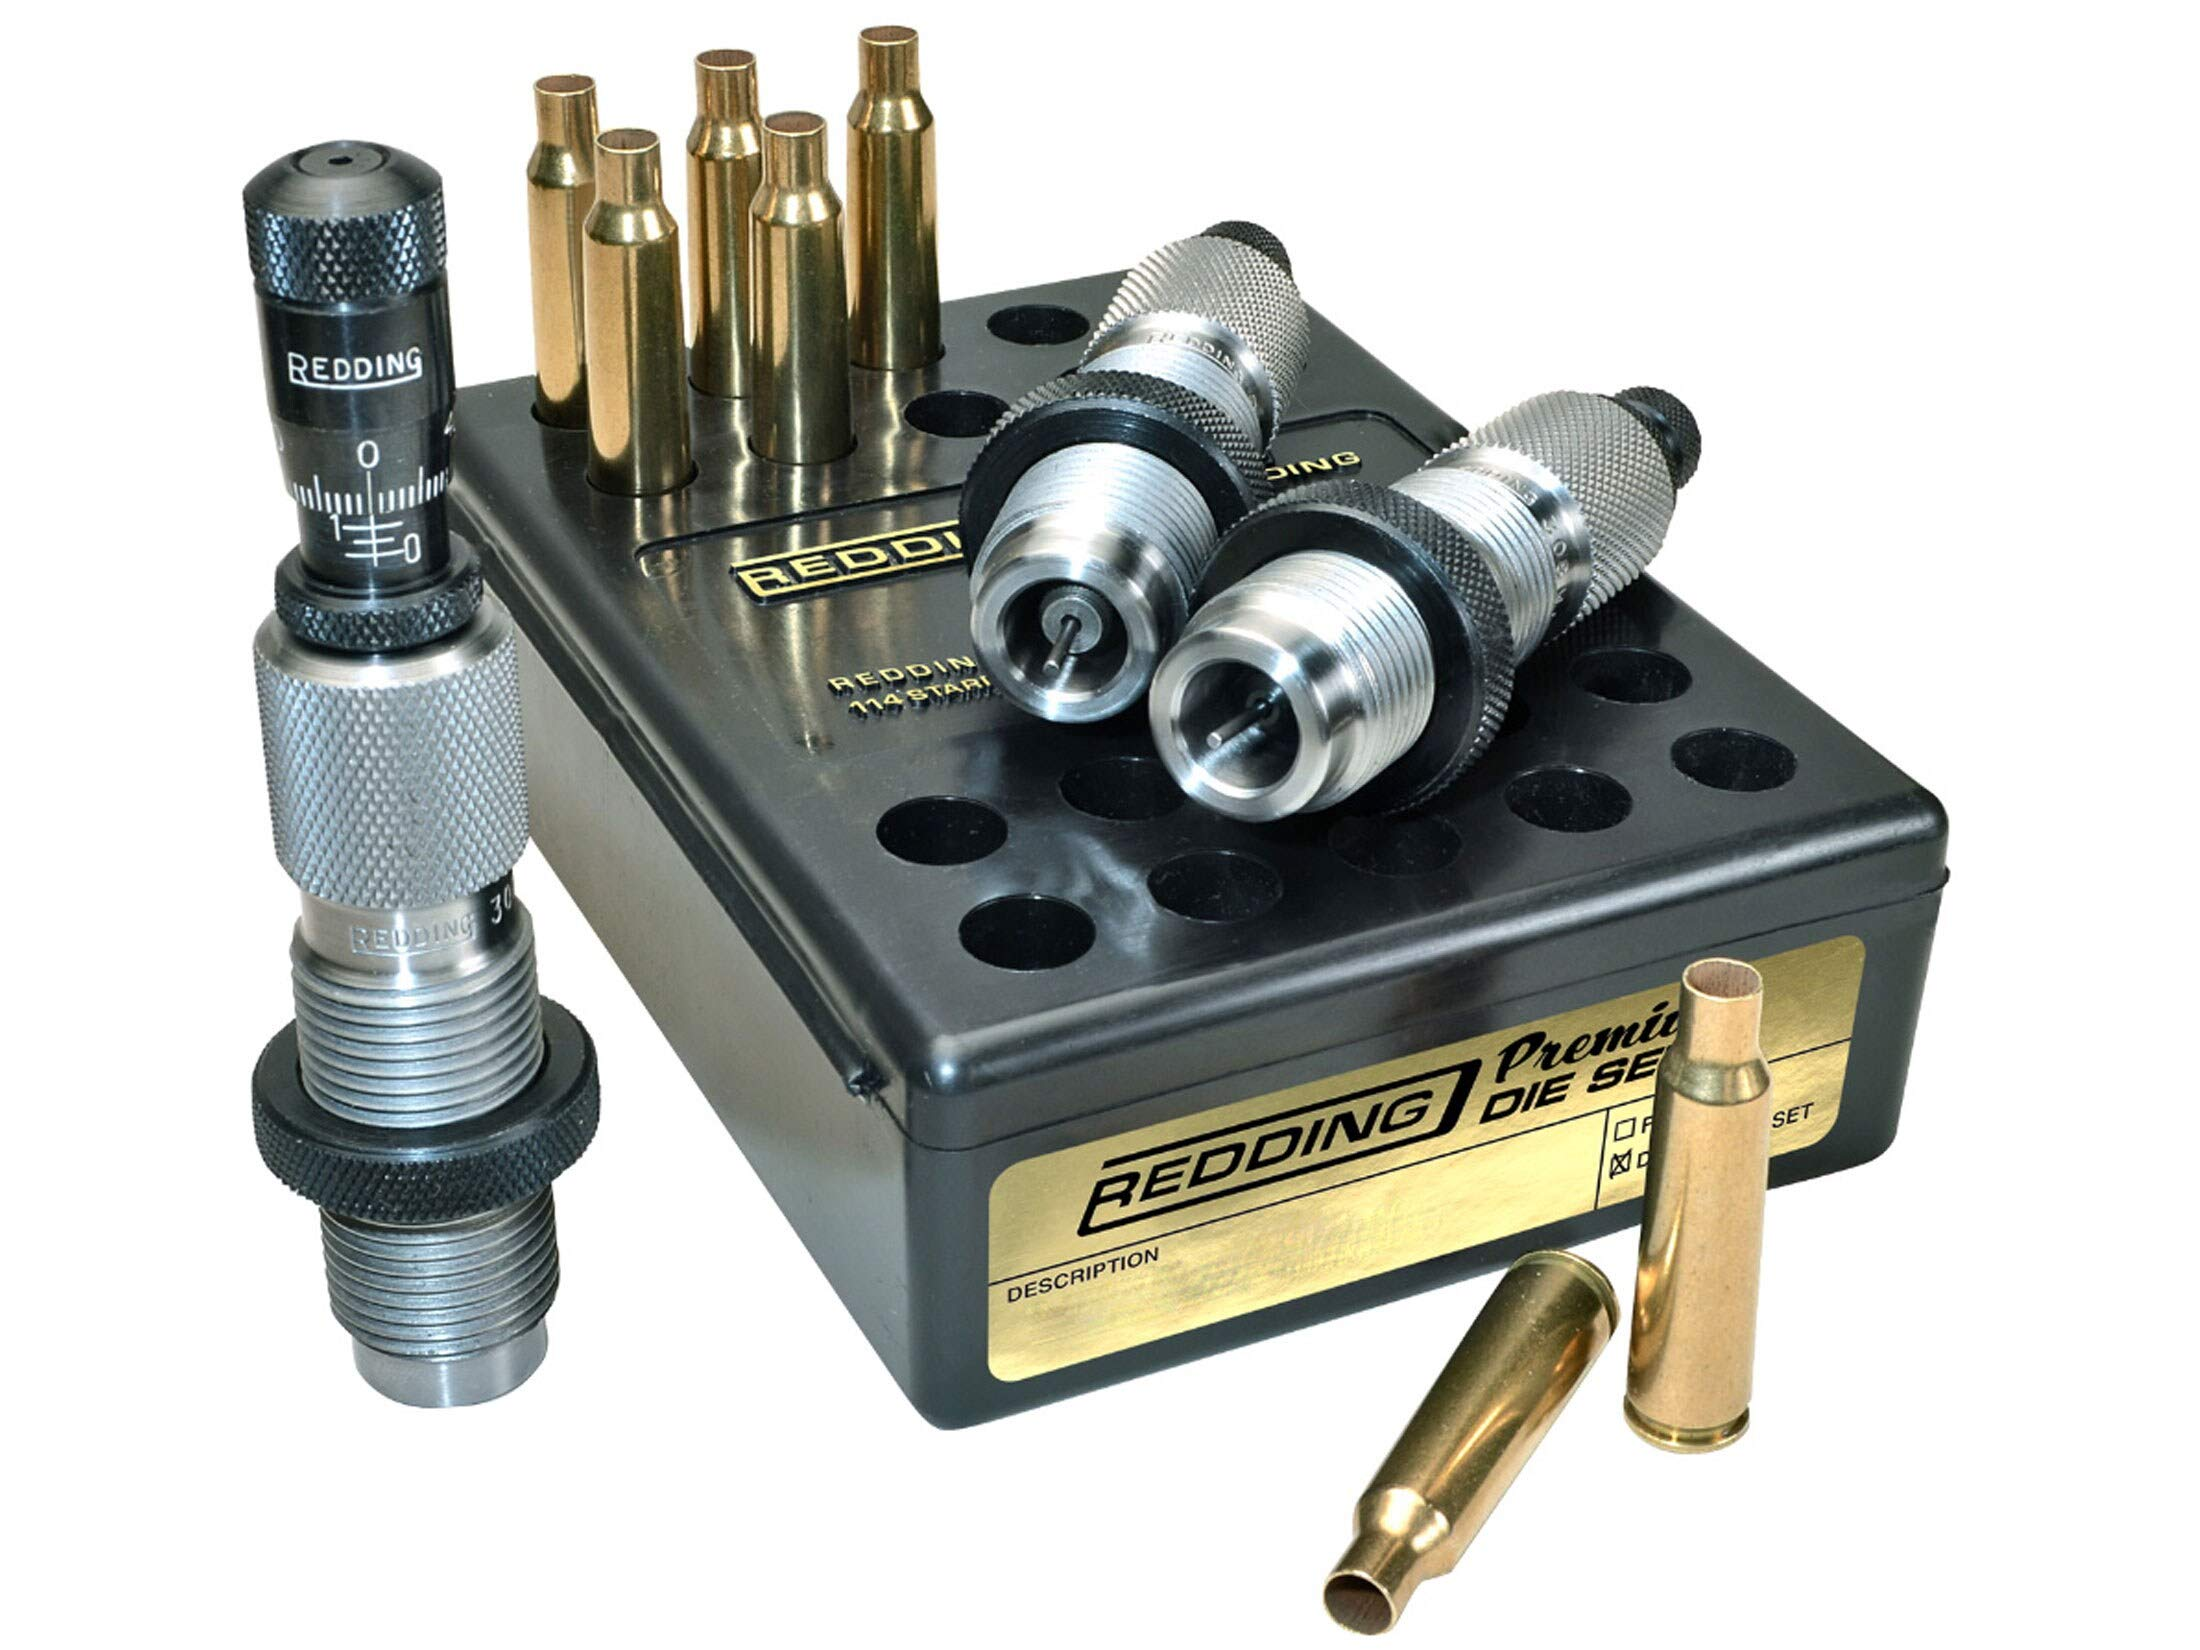 Redding Reloading Premium Series Deluxe Die Set - 6.5 Creedmoor, 68446 by Redding